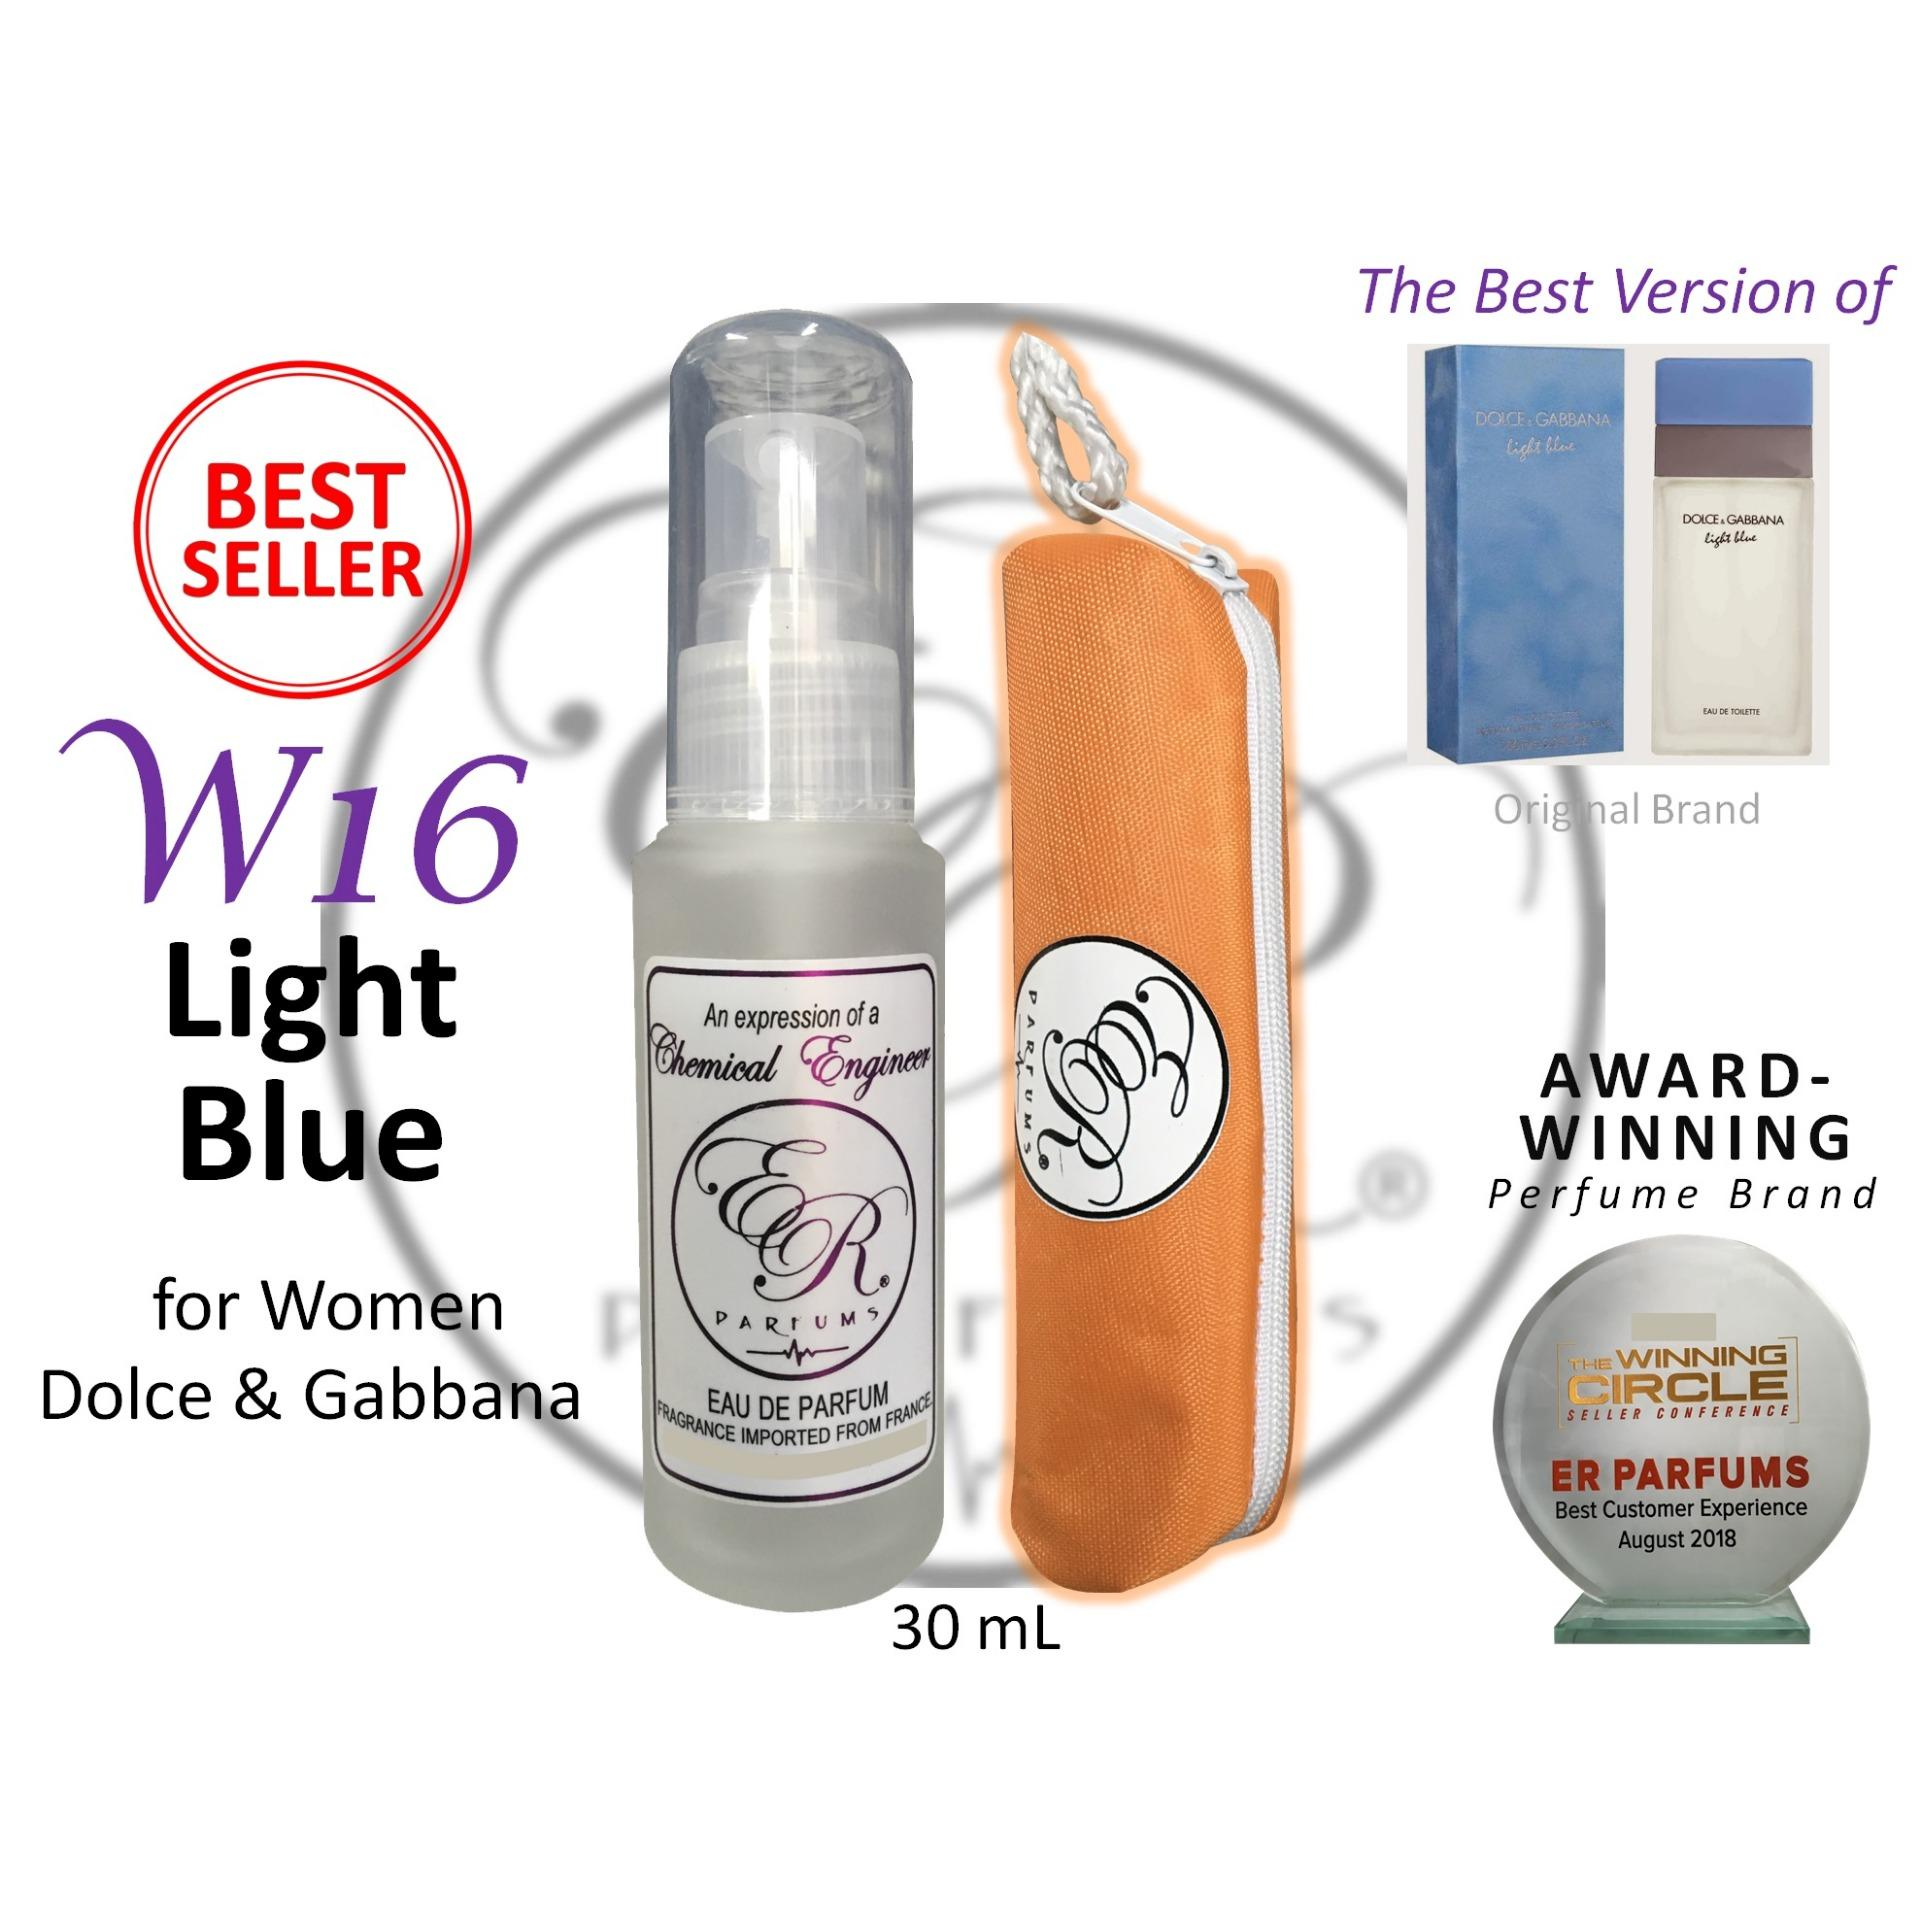 7650592fe6d62 ER PARFUMS W16 Light Blue for Women by Dolce   Gabbana 1 piece 30 mL perfume